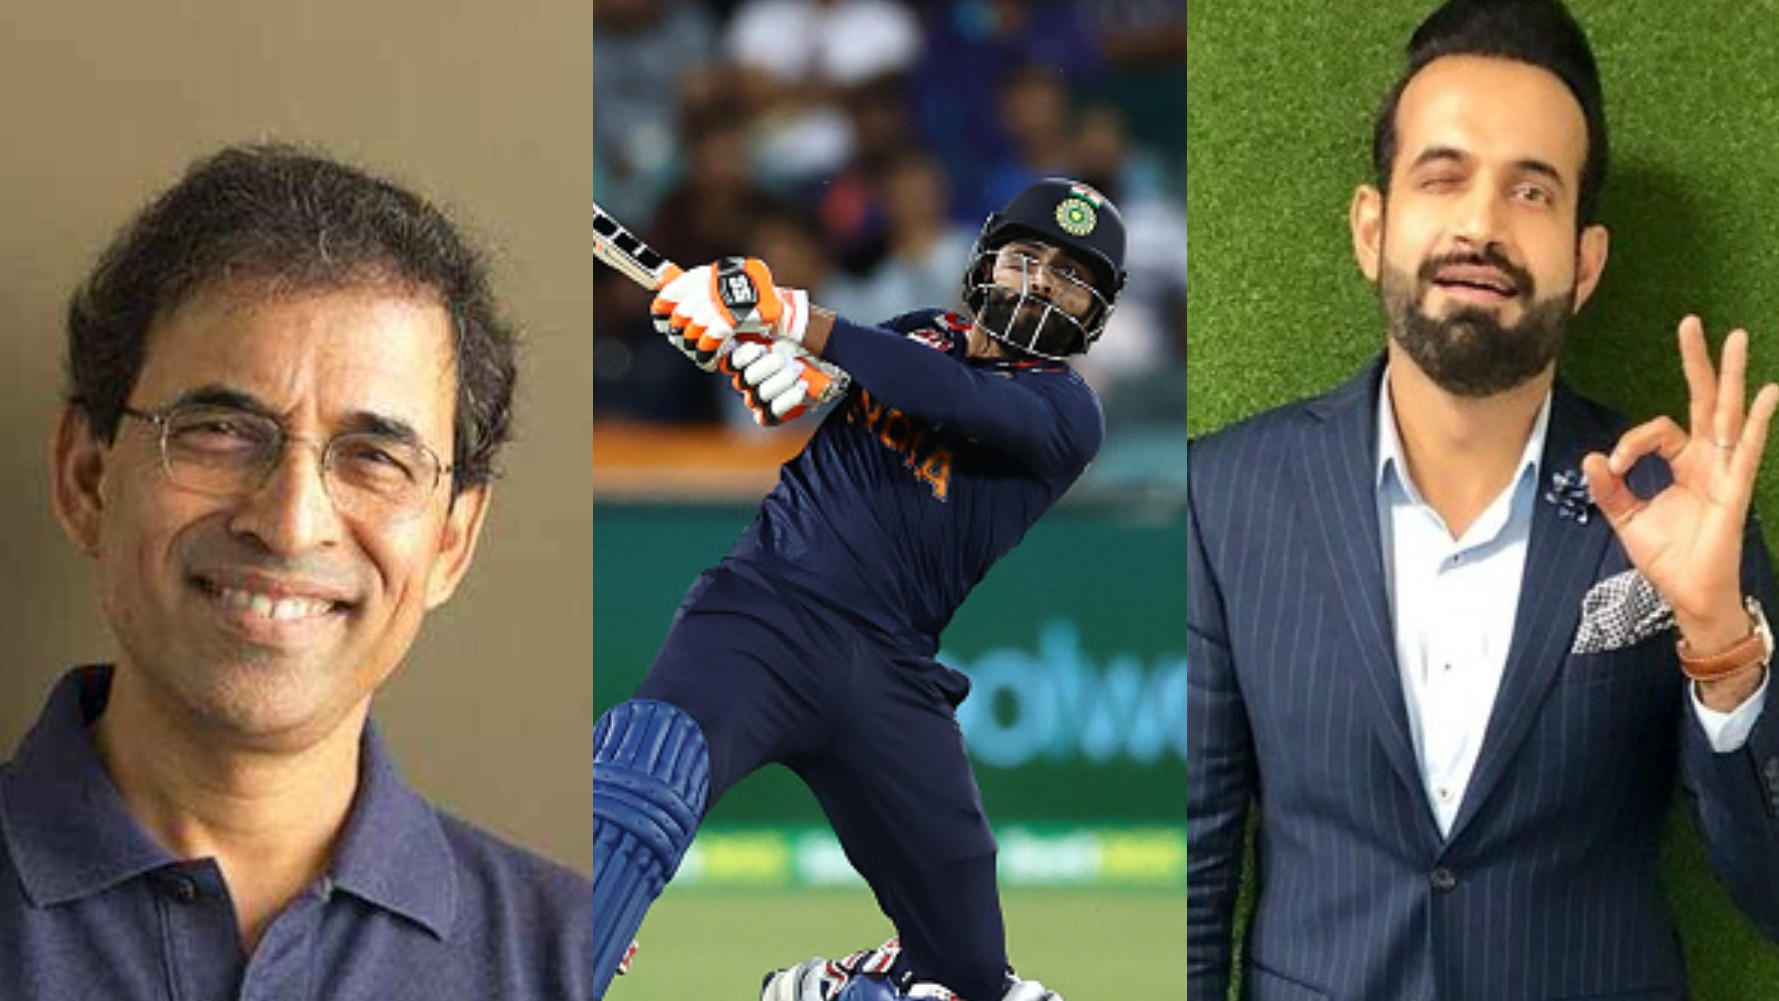 AUS v IND 2020-21 Cricket fraternity reacts as Rahul-Jadeja power India to 161/7 in 1st T20I